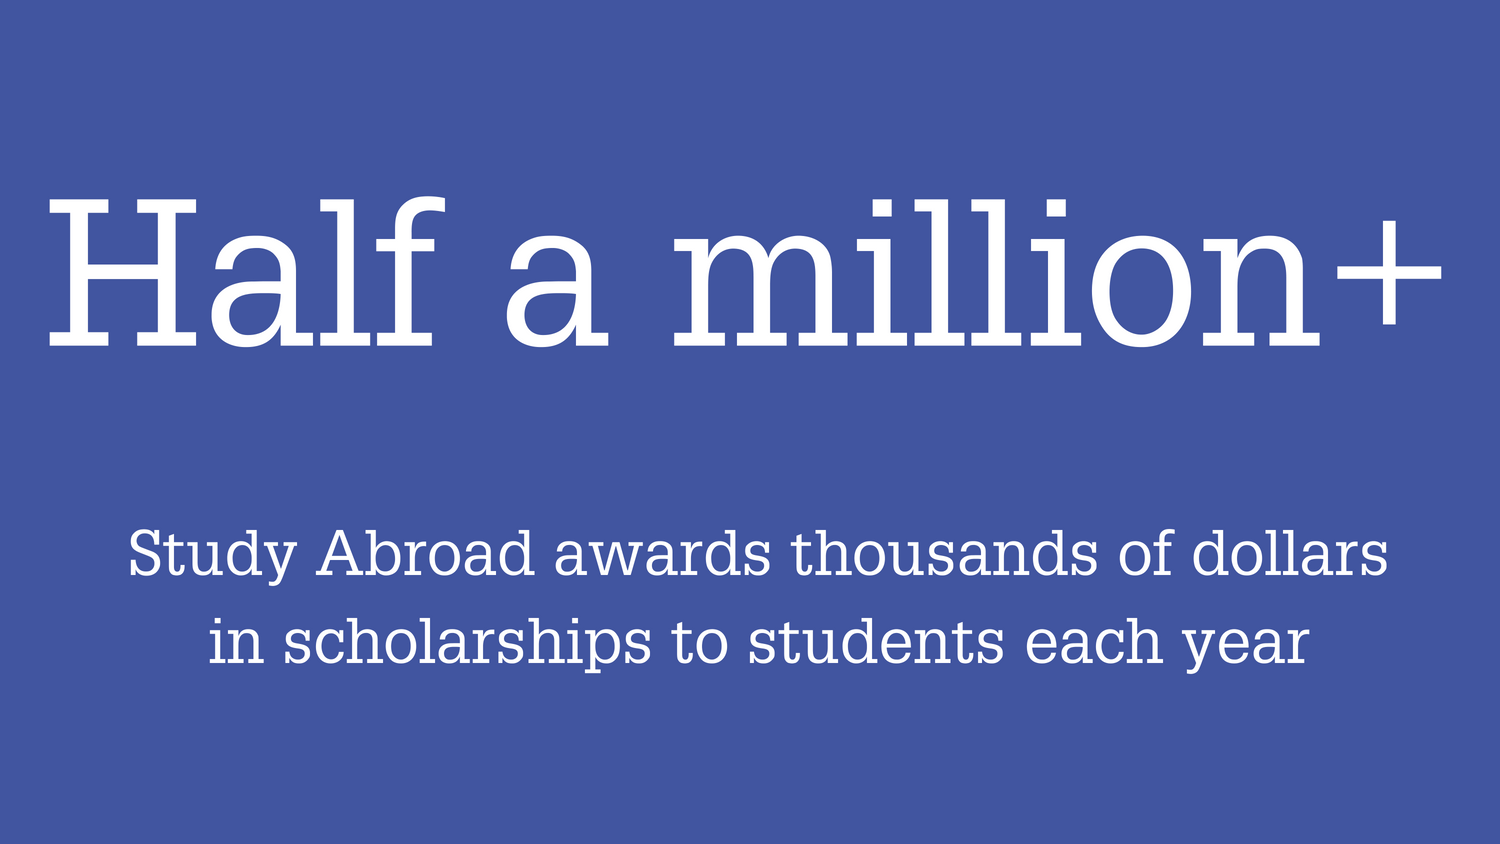 Study Abroad awards thousands of dollars in scholarships to students each year.